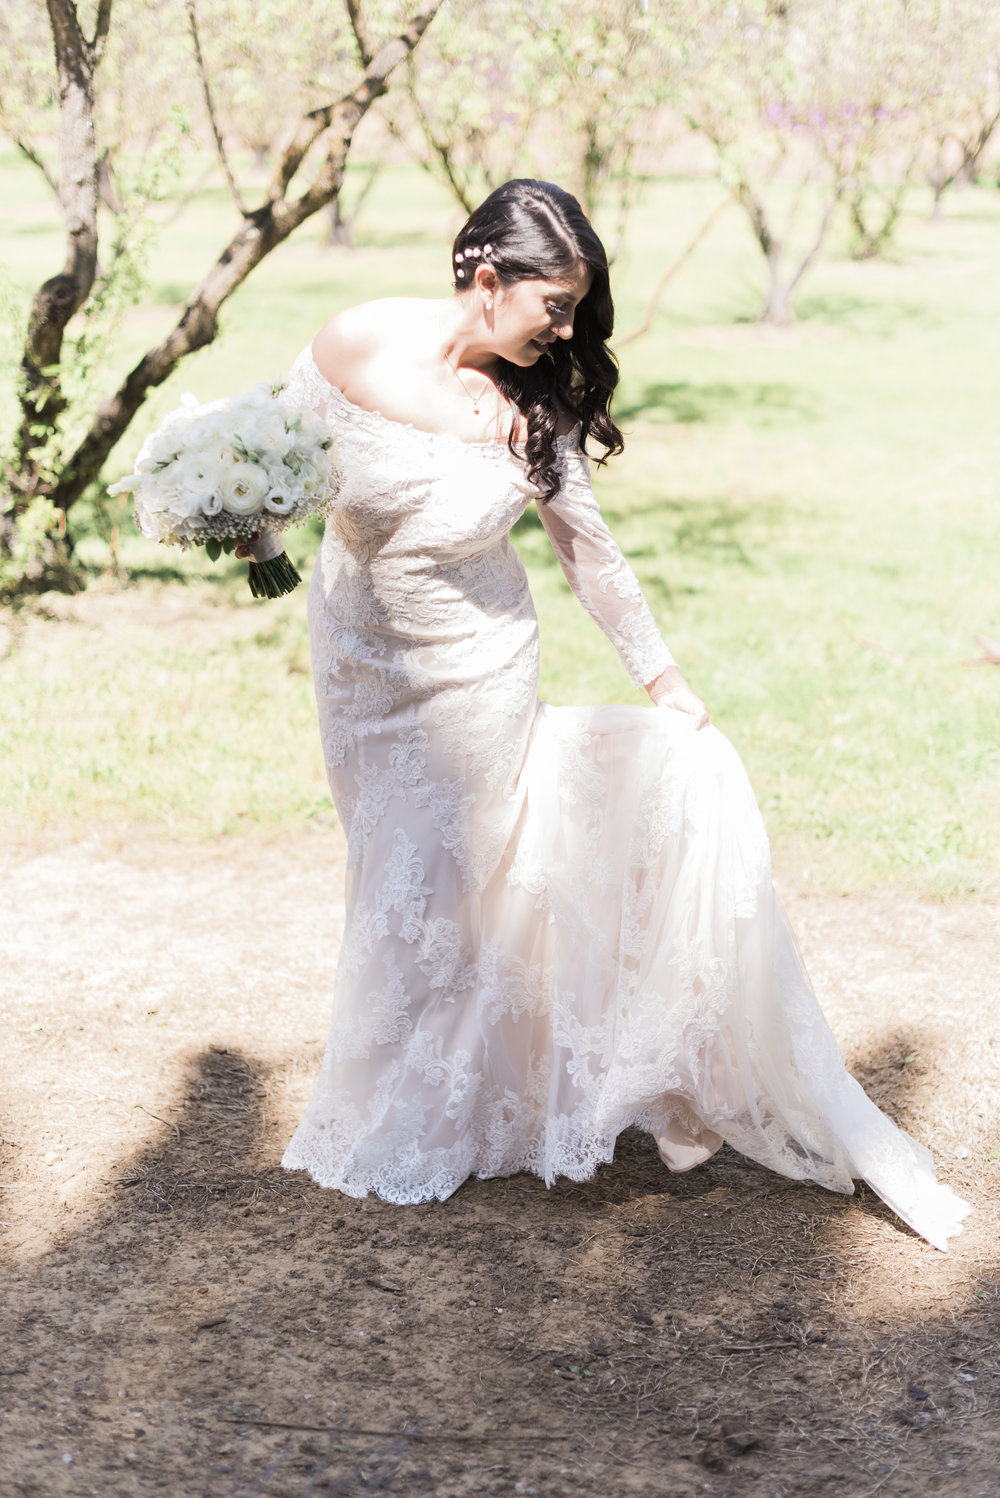 portrait-of-the-bride-in-a-tree-orchard.jpg